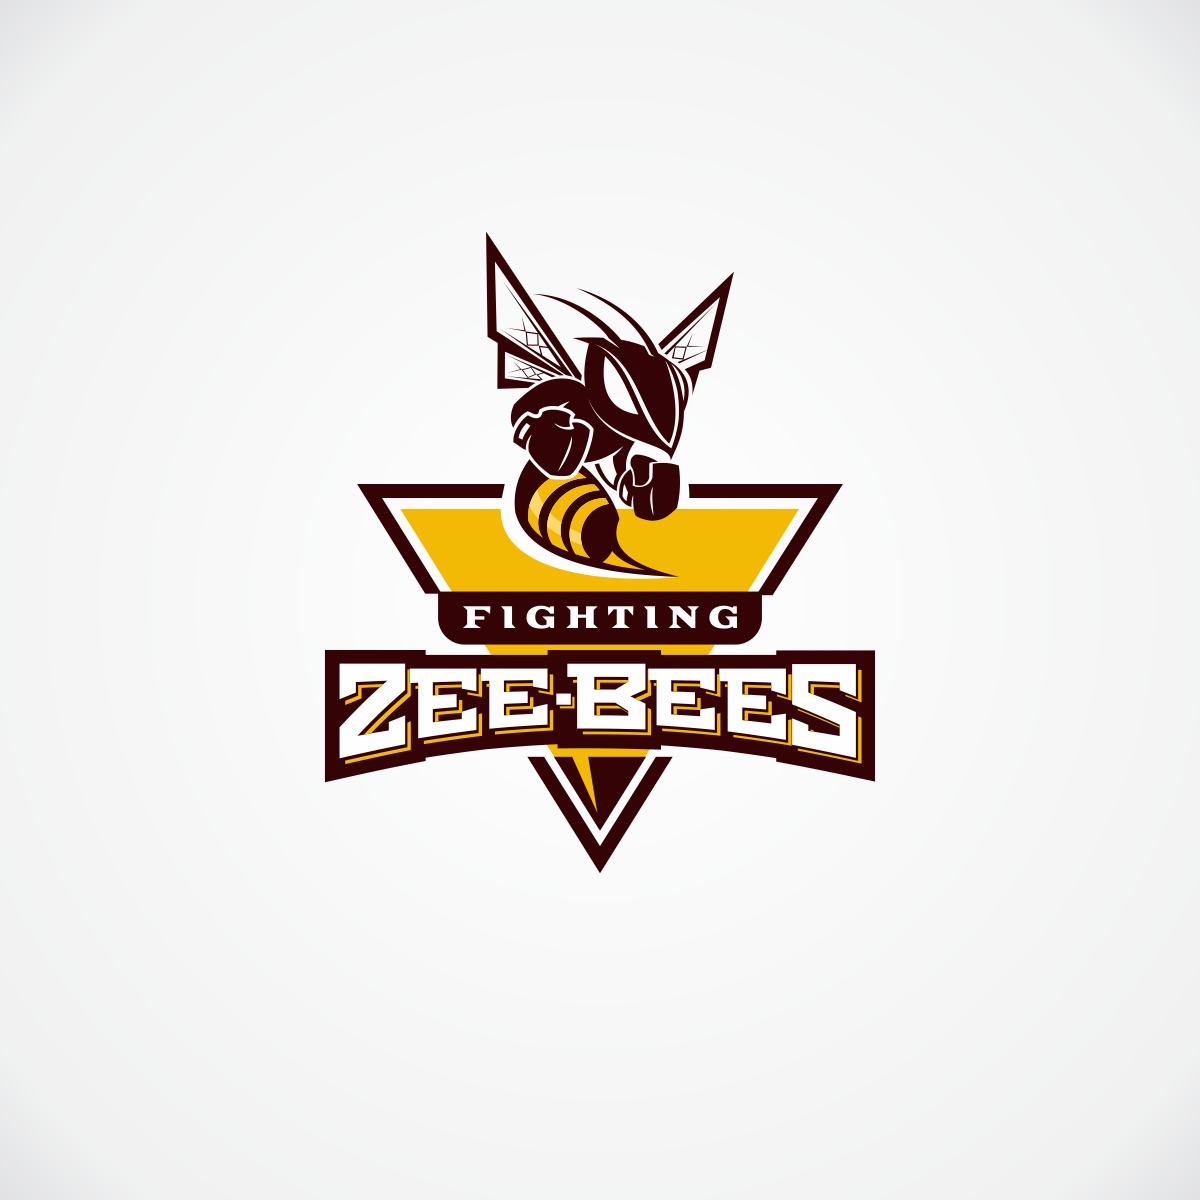 Bold, Serious, School Graphic Design for Jr. ZeeBees